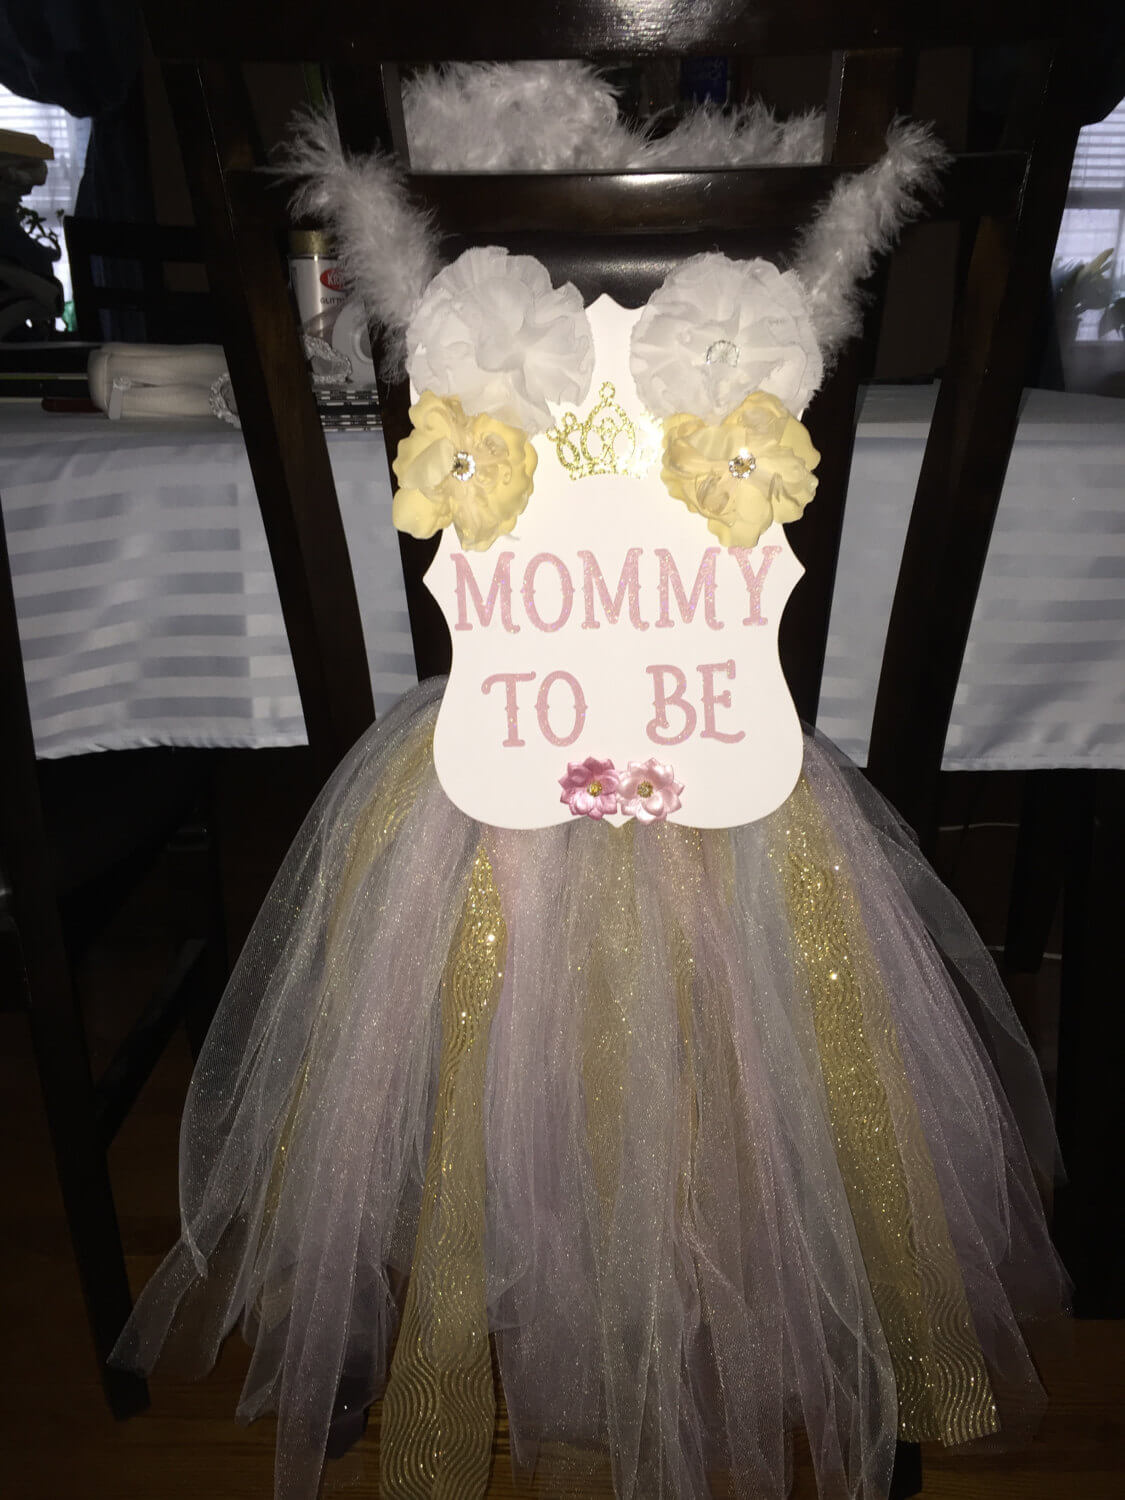 Mommy To Be Baby Shower Chair Sash